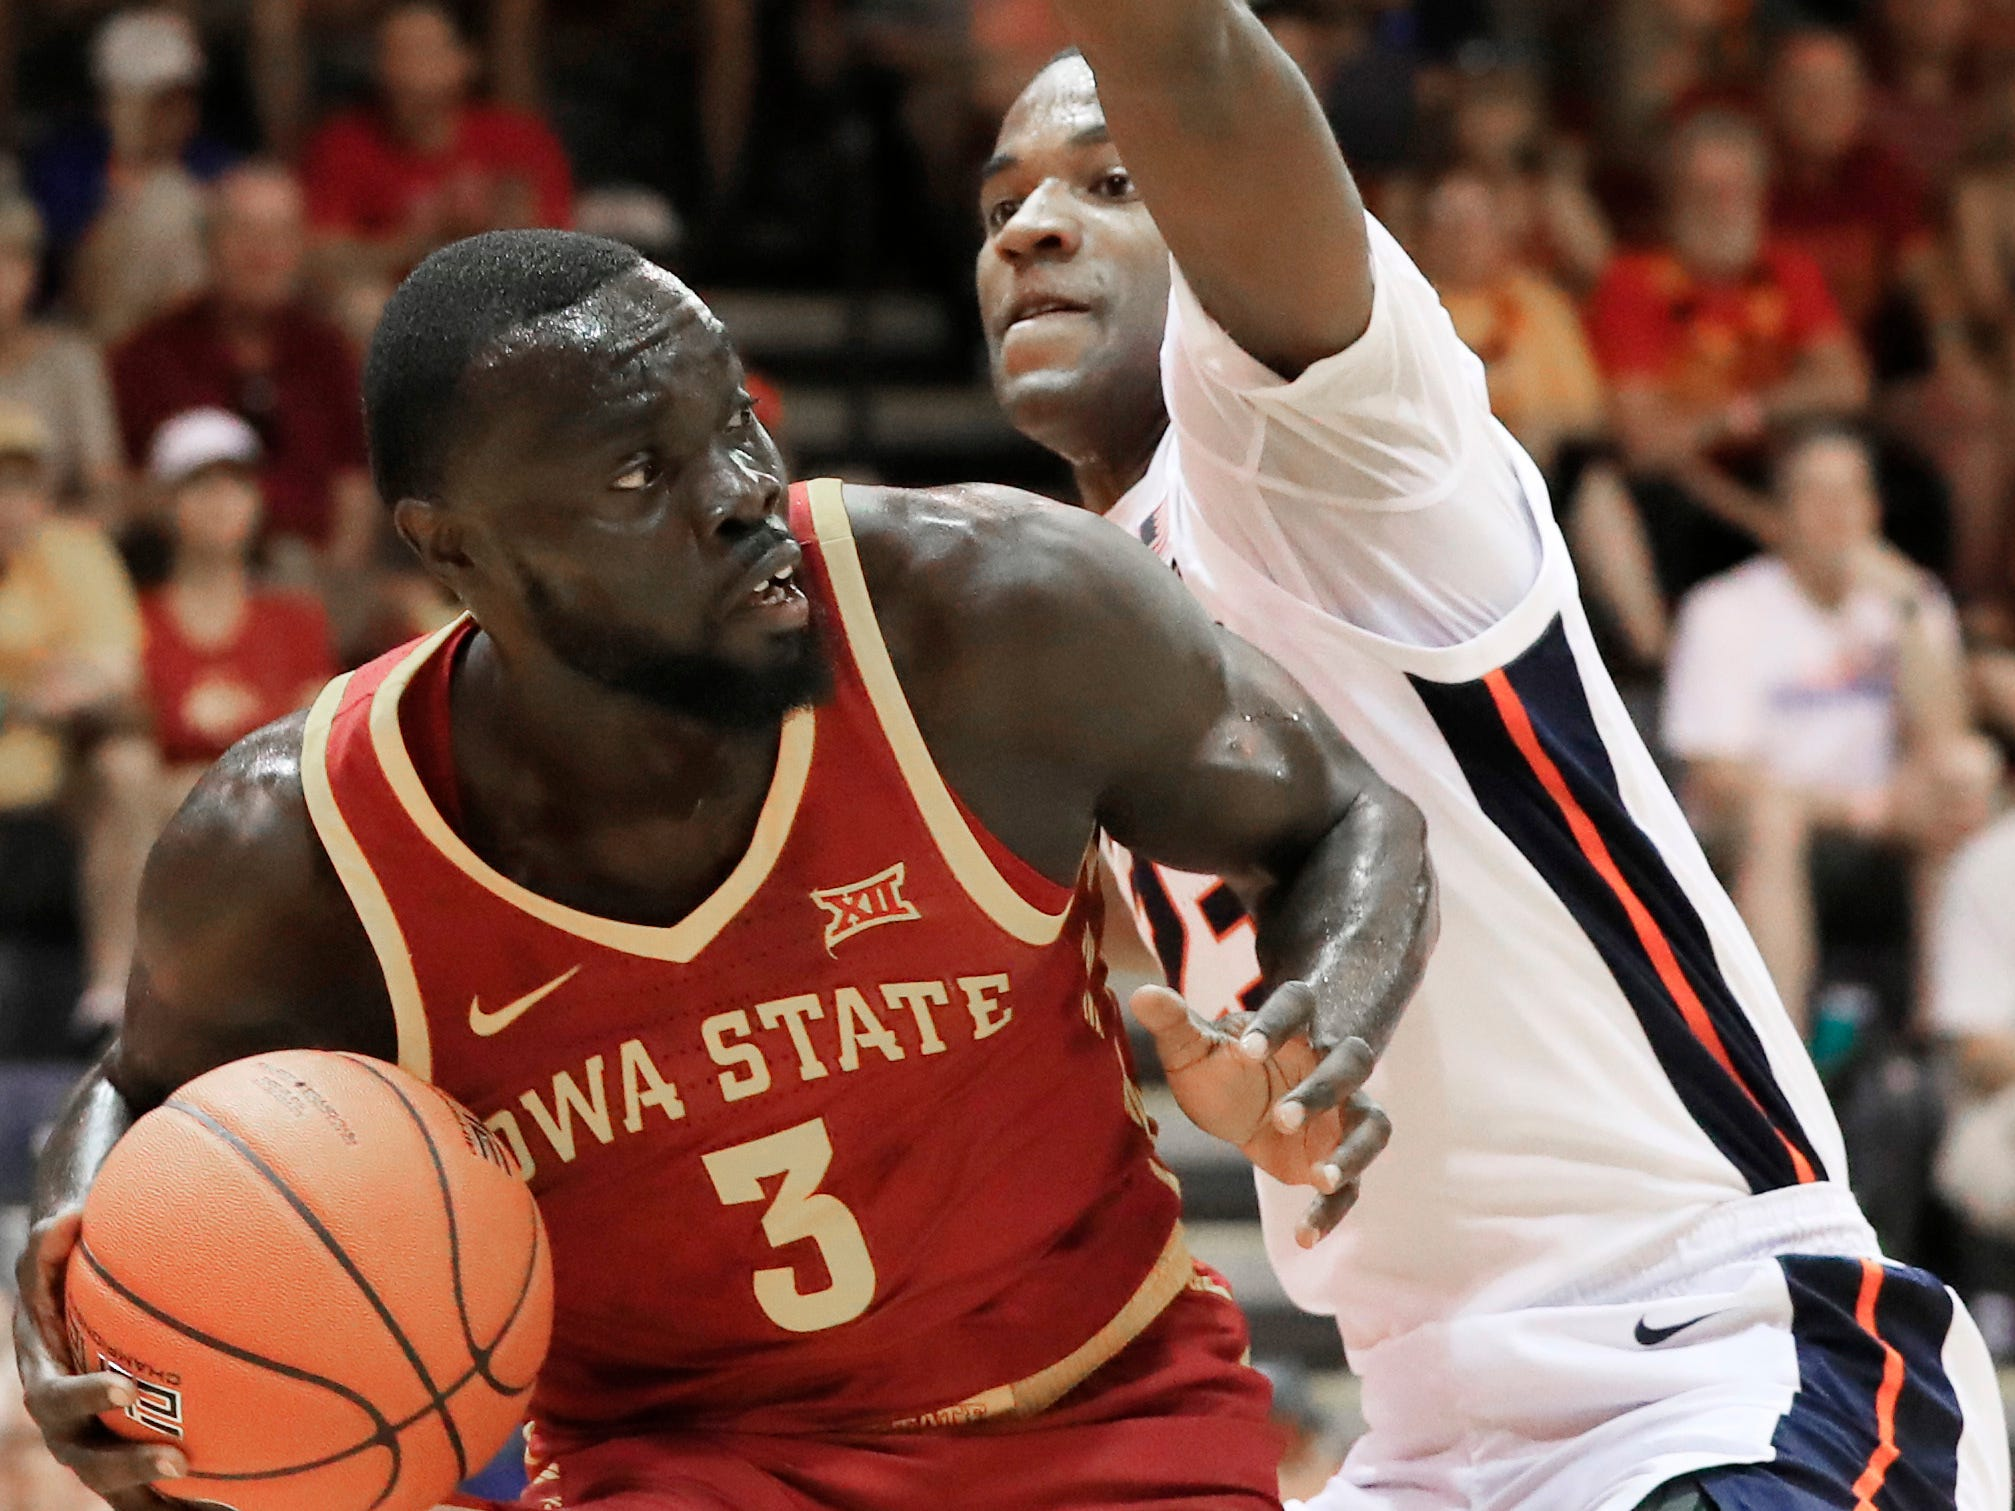 Iowa State guard Marial Shayok (3) tries to pass around Illinois guard Aaron Jordan (23) during the first half of an NCAA college basketball game at the Maui Invitational, Tuesday, Nov. 20, 2018, in Lahaina, Hawaii. (AP Photo/Marco Garcia)